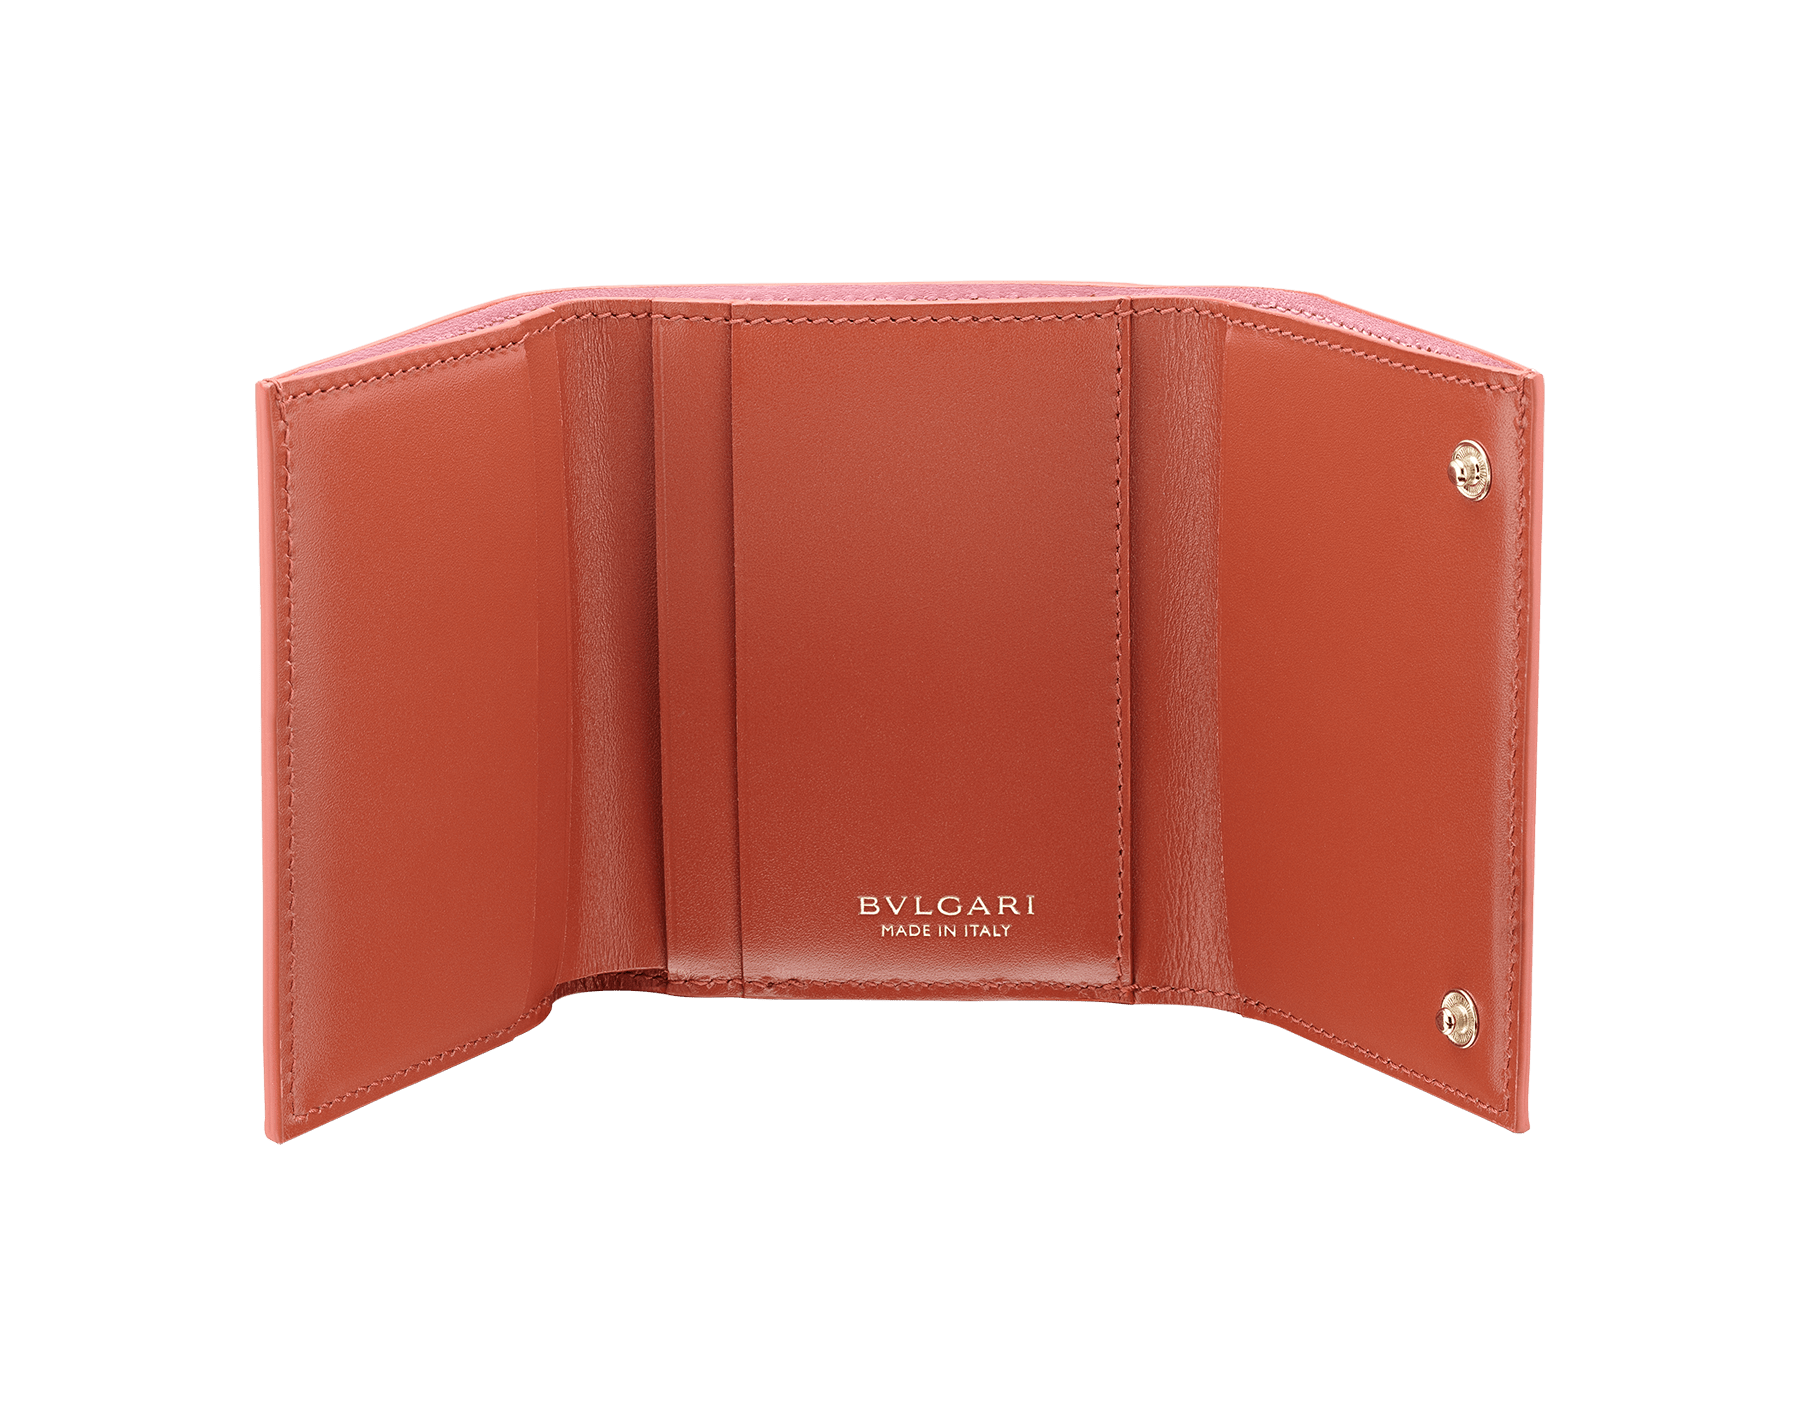 B.zero1 compact wallet in rosa di francia and imperial topaz goatskin. Iconic B.zero1 zip in light gold plated brass and two press stud closures. 289085 image 2